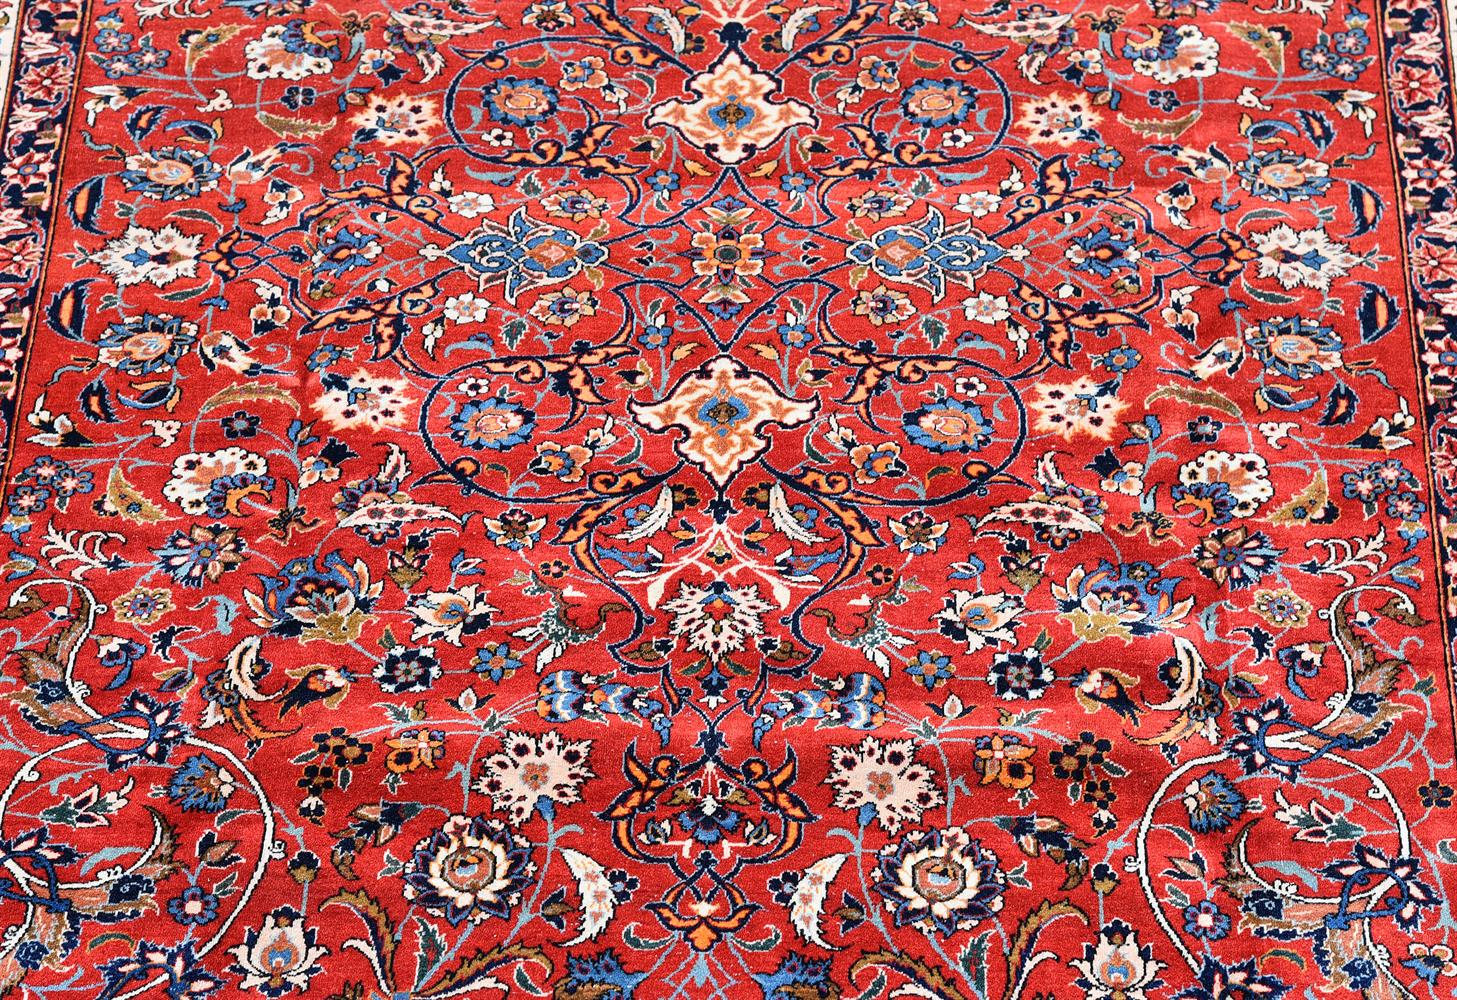 AN ISFAHAN CARPET, approximately 338 x 229cm - Image 2 of 3